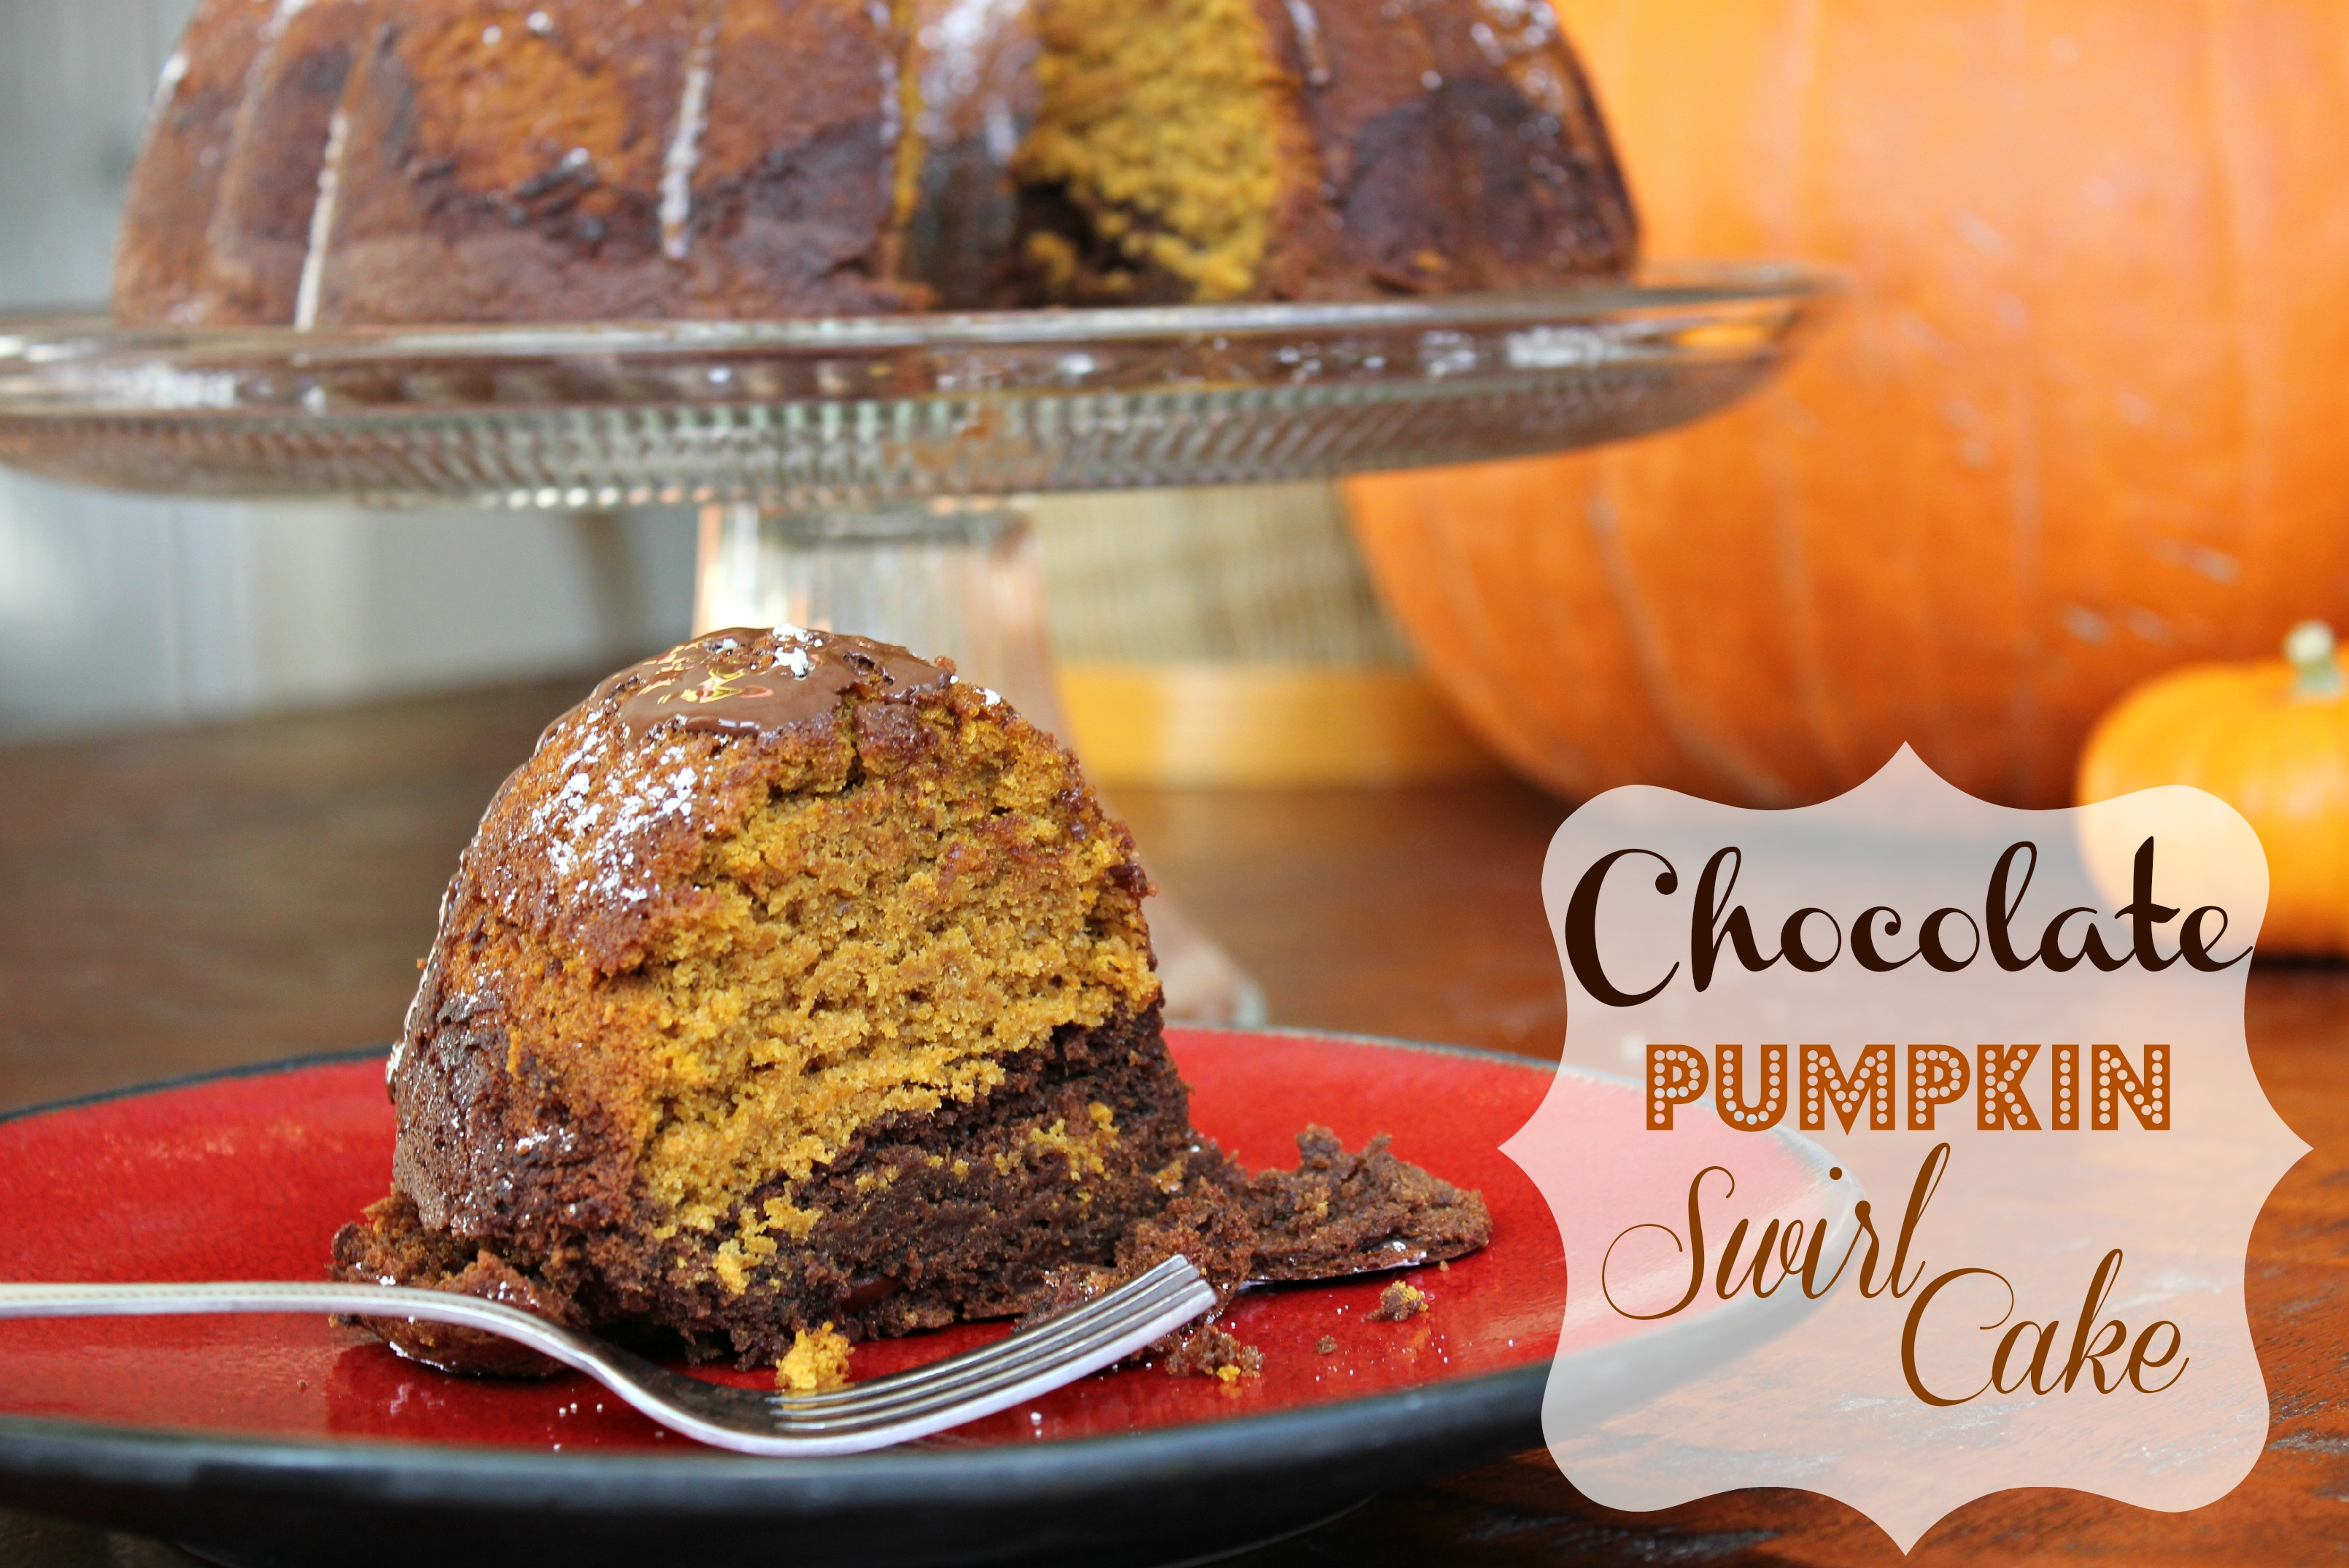 Chocolate Pumpkin Swirl Cake